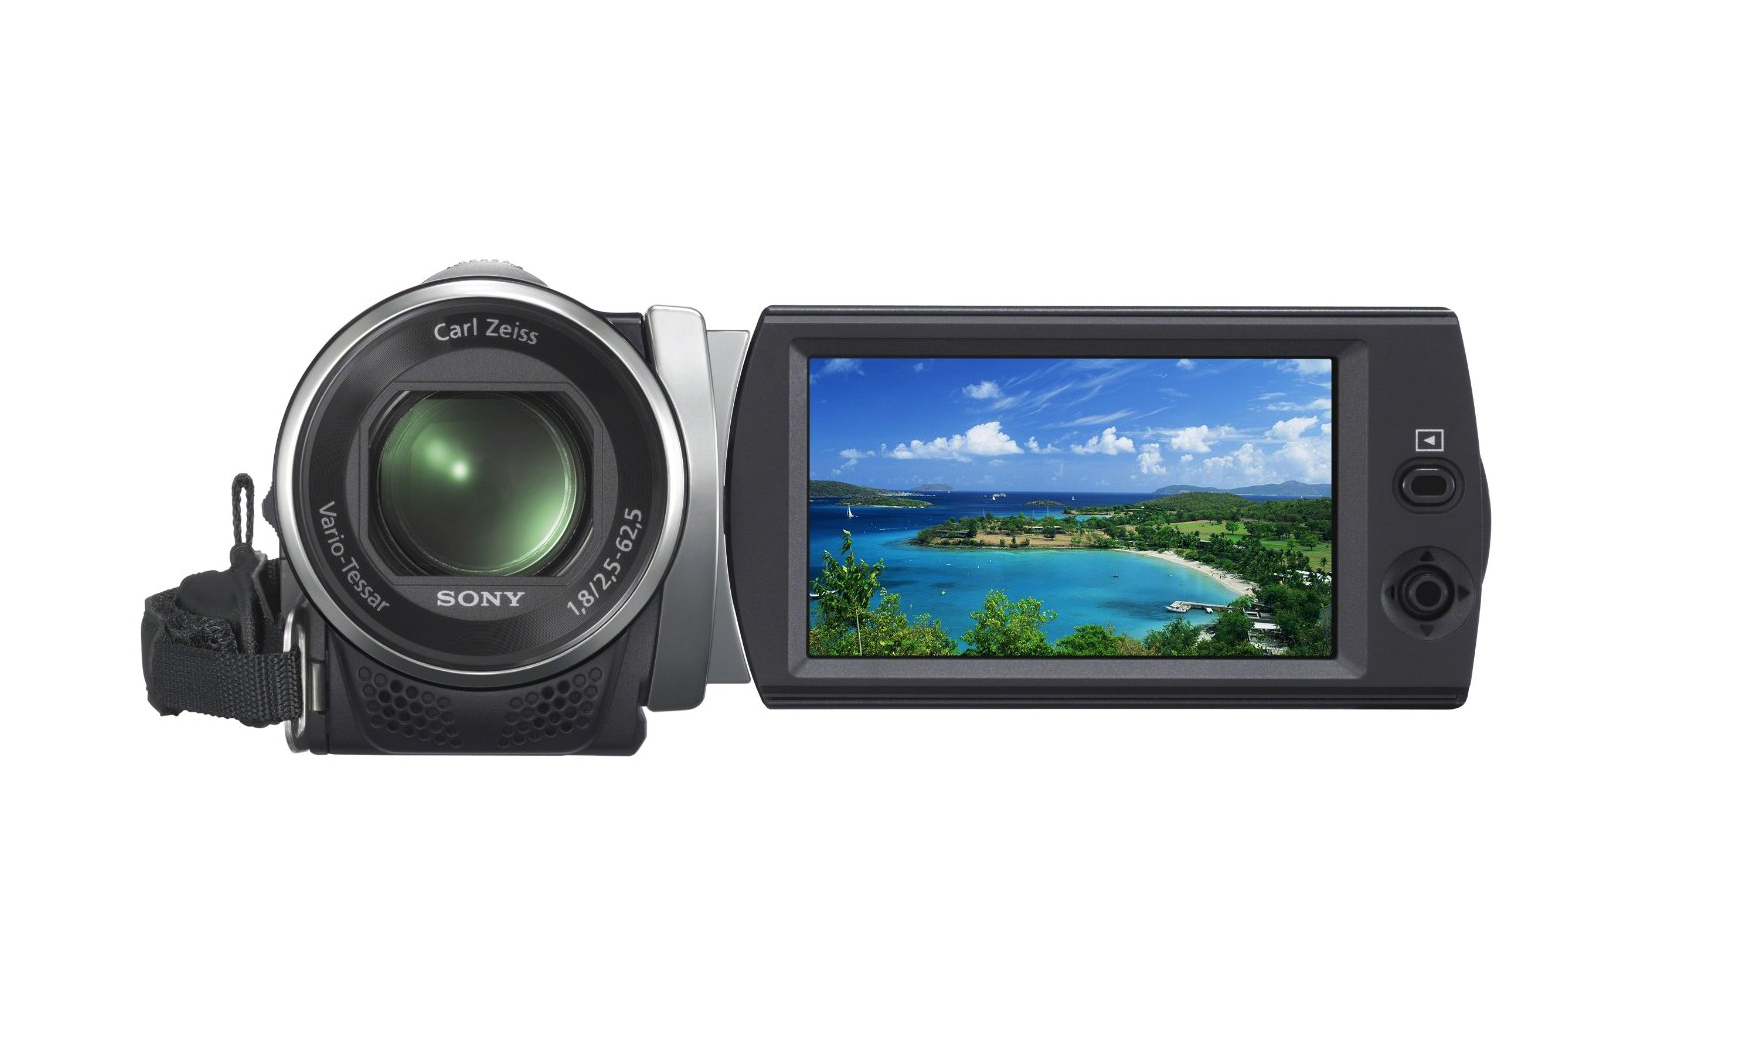 image of a consumer video camera